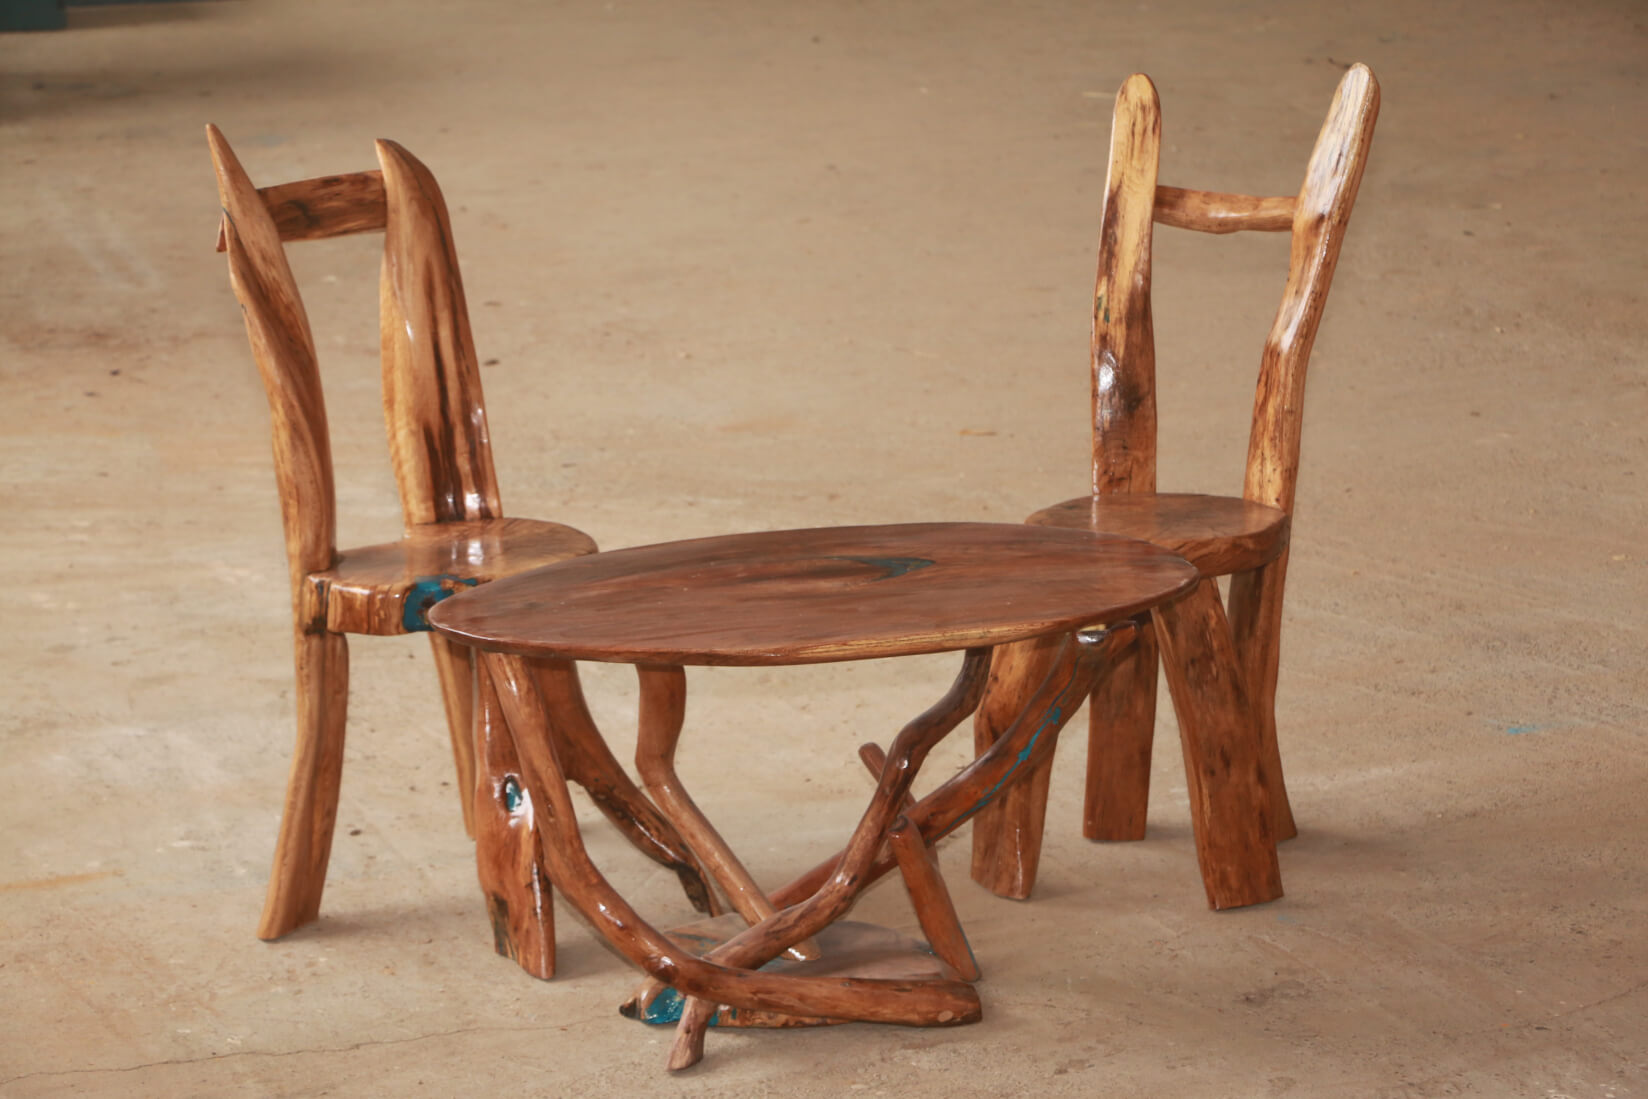 Wood chairs and rount table